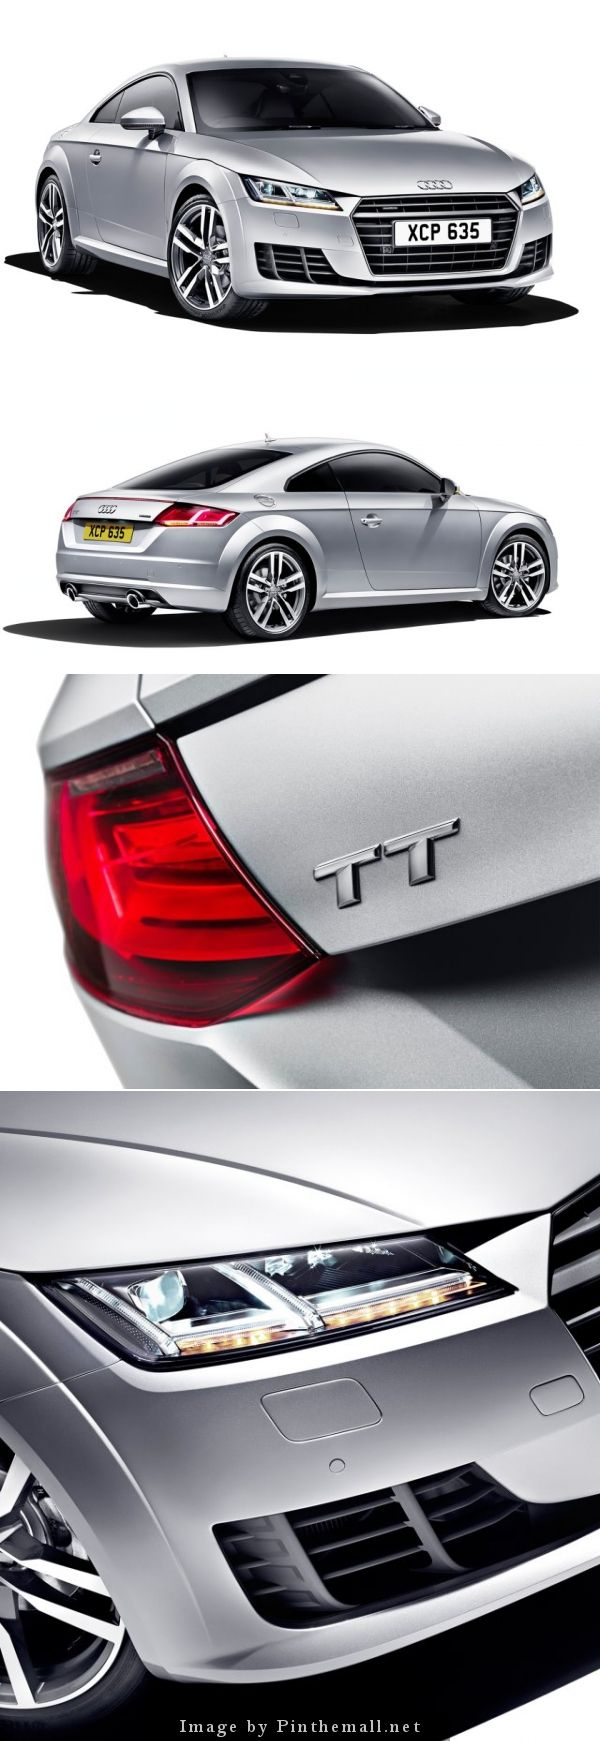 2015 Audi TThttp://lucire.com/insider/20140820/audis-new-tt-is-leaner-and-greener-with-whole-life-environmental-impact-reduced/